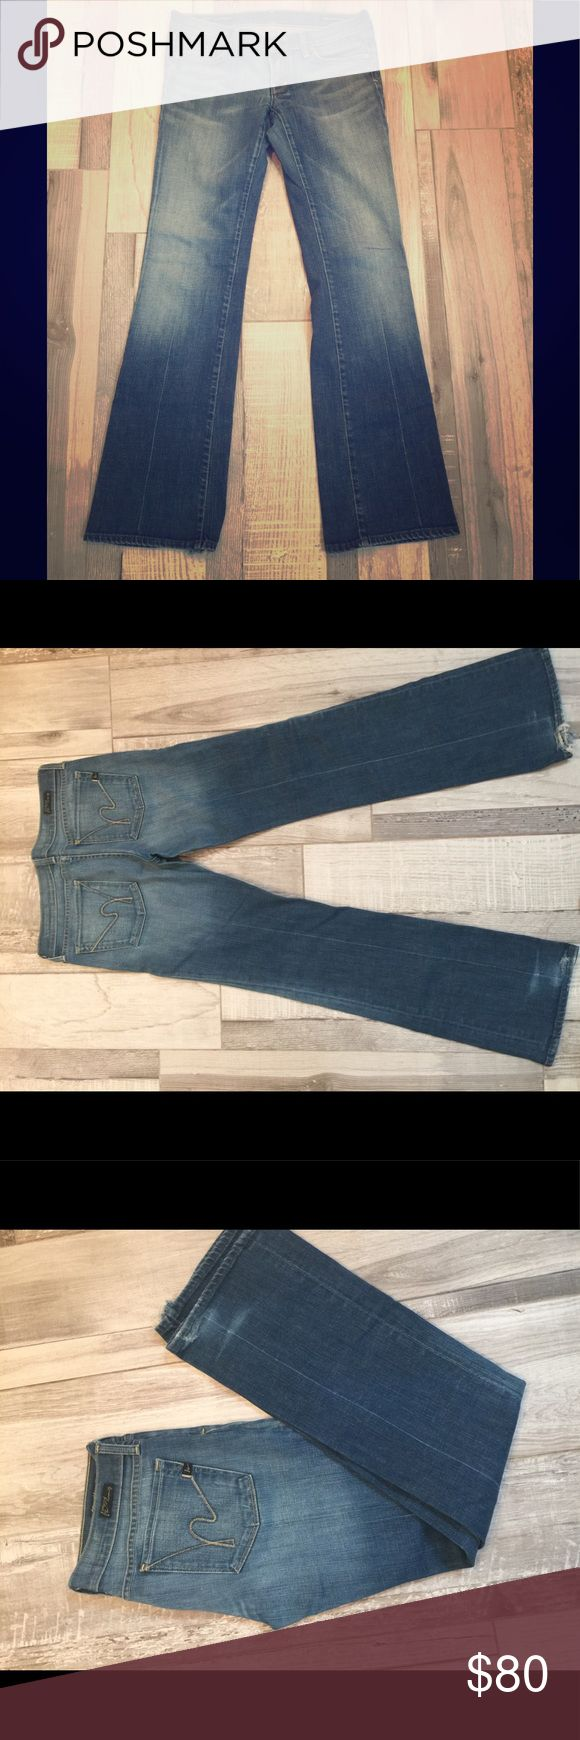 citizens of Humanity jeans Citizens of humanity jeans, . Kelly #001, low waisted, Boot cut, stretch. Only worn a couple times. Citizens Of Humanity Jeans Boot Cut